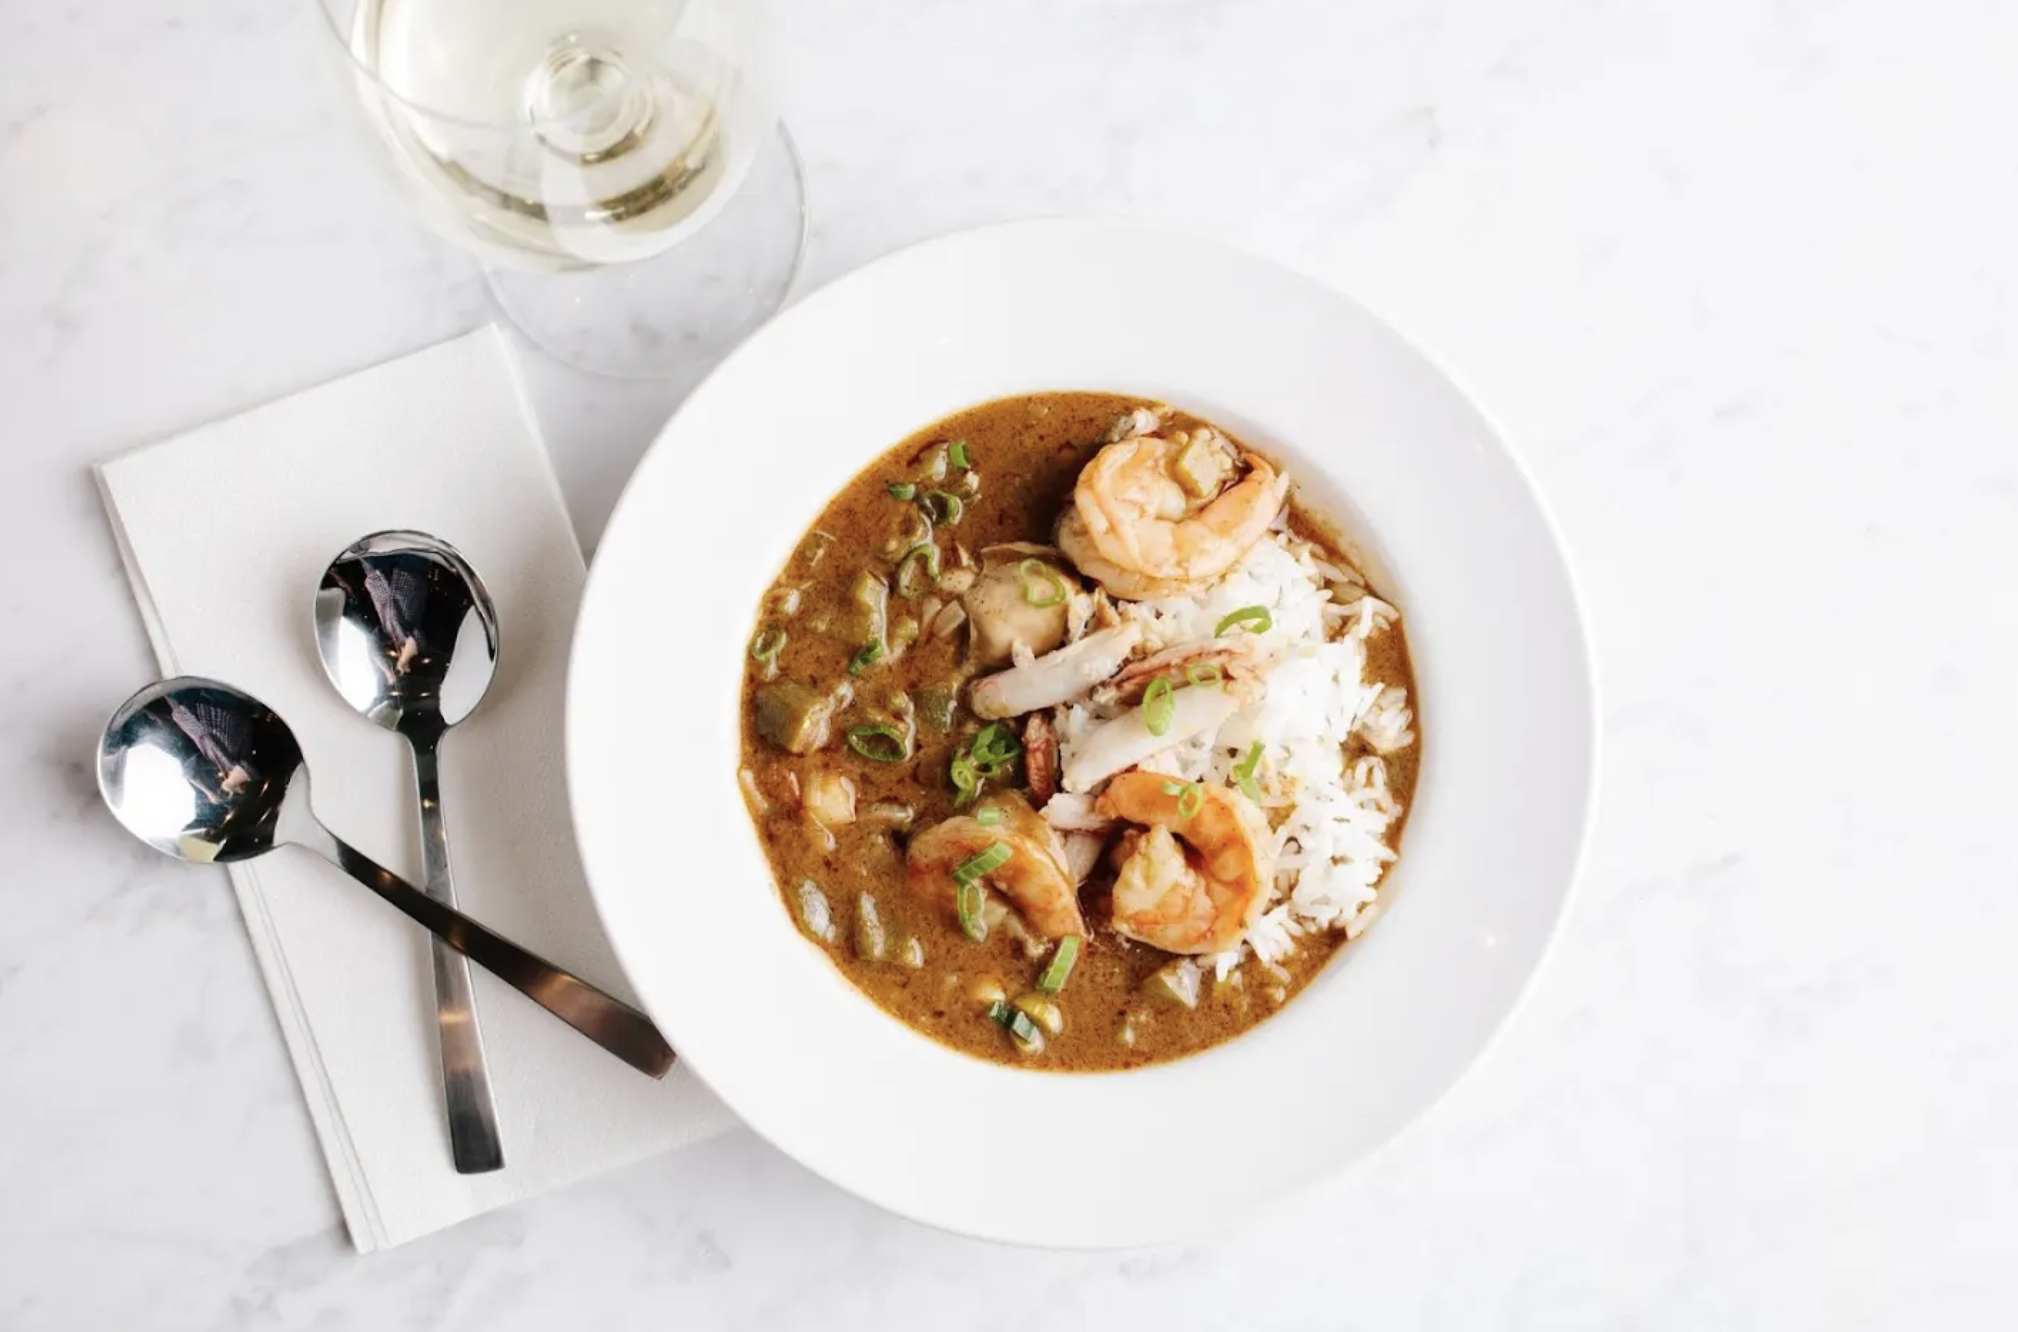 A white bowl filled with gumbo with rice and big pink shrimp on top